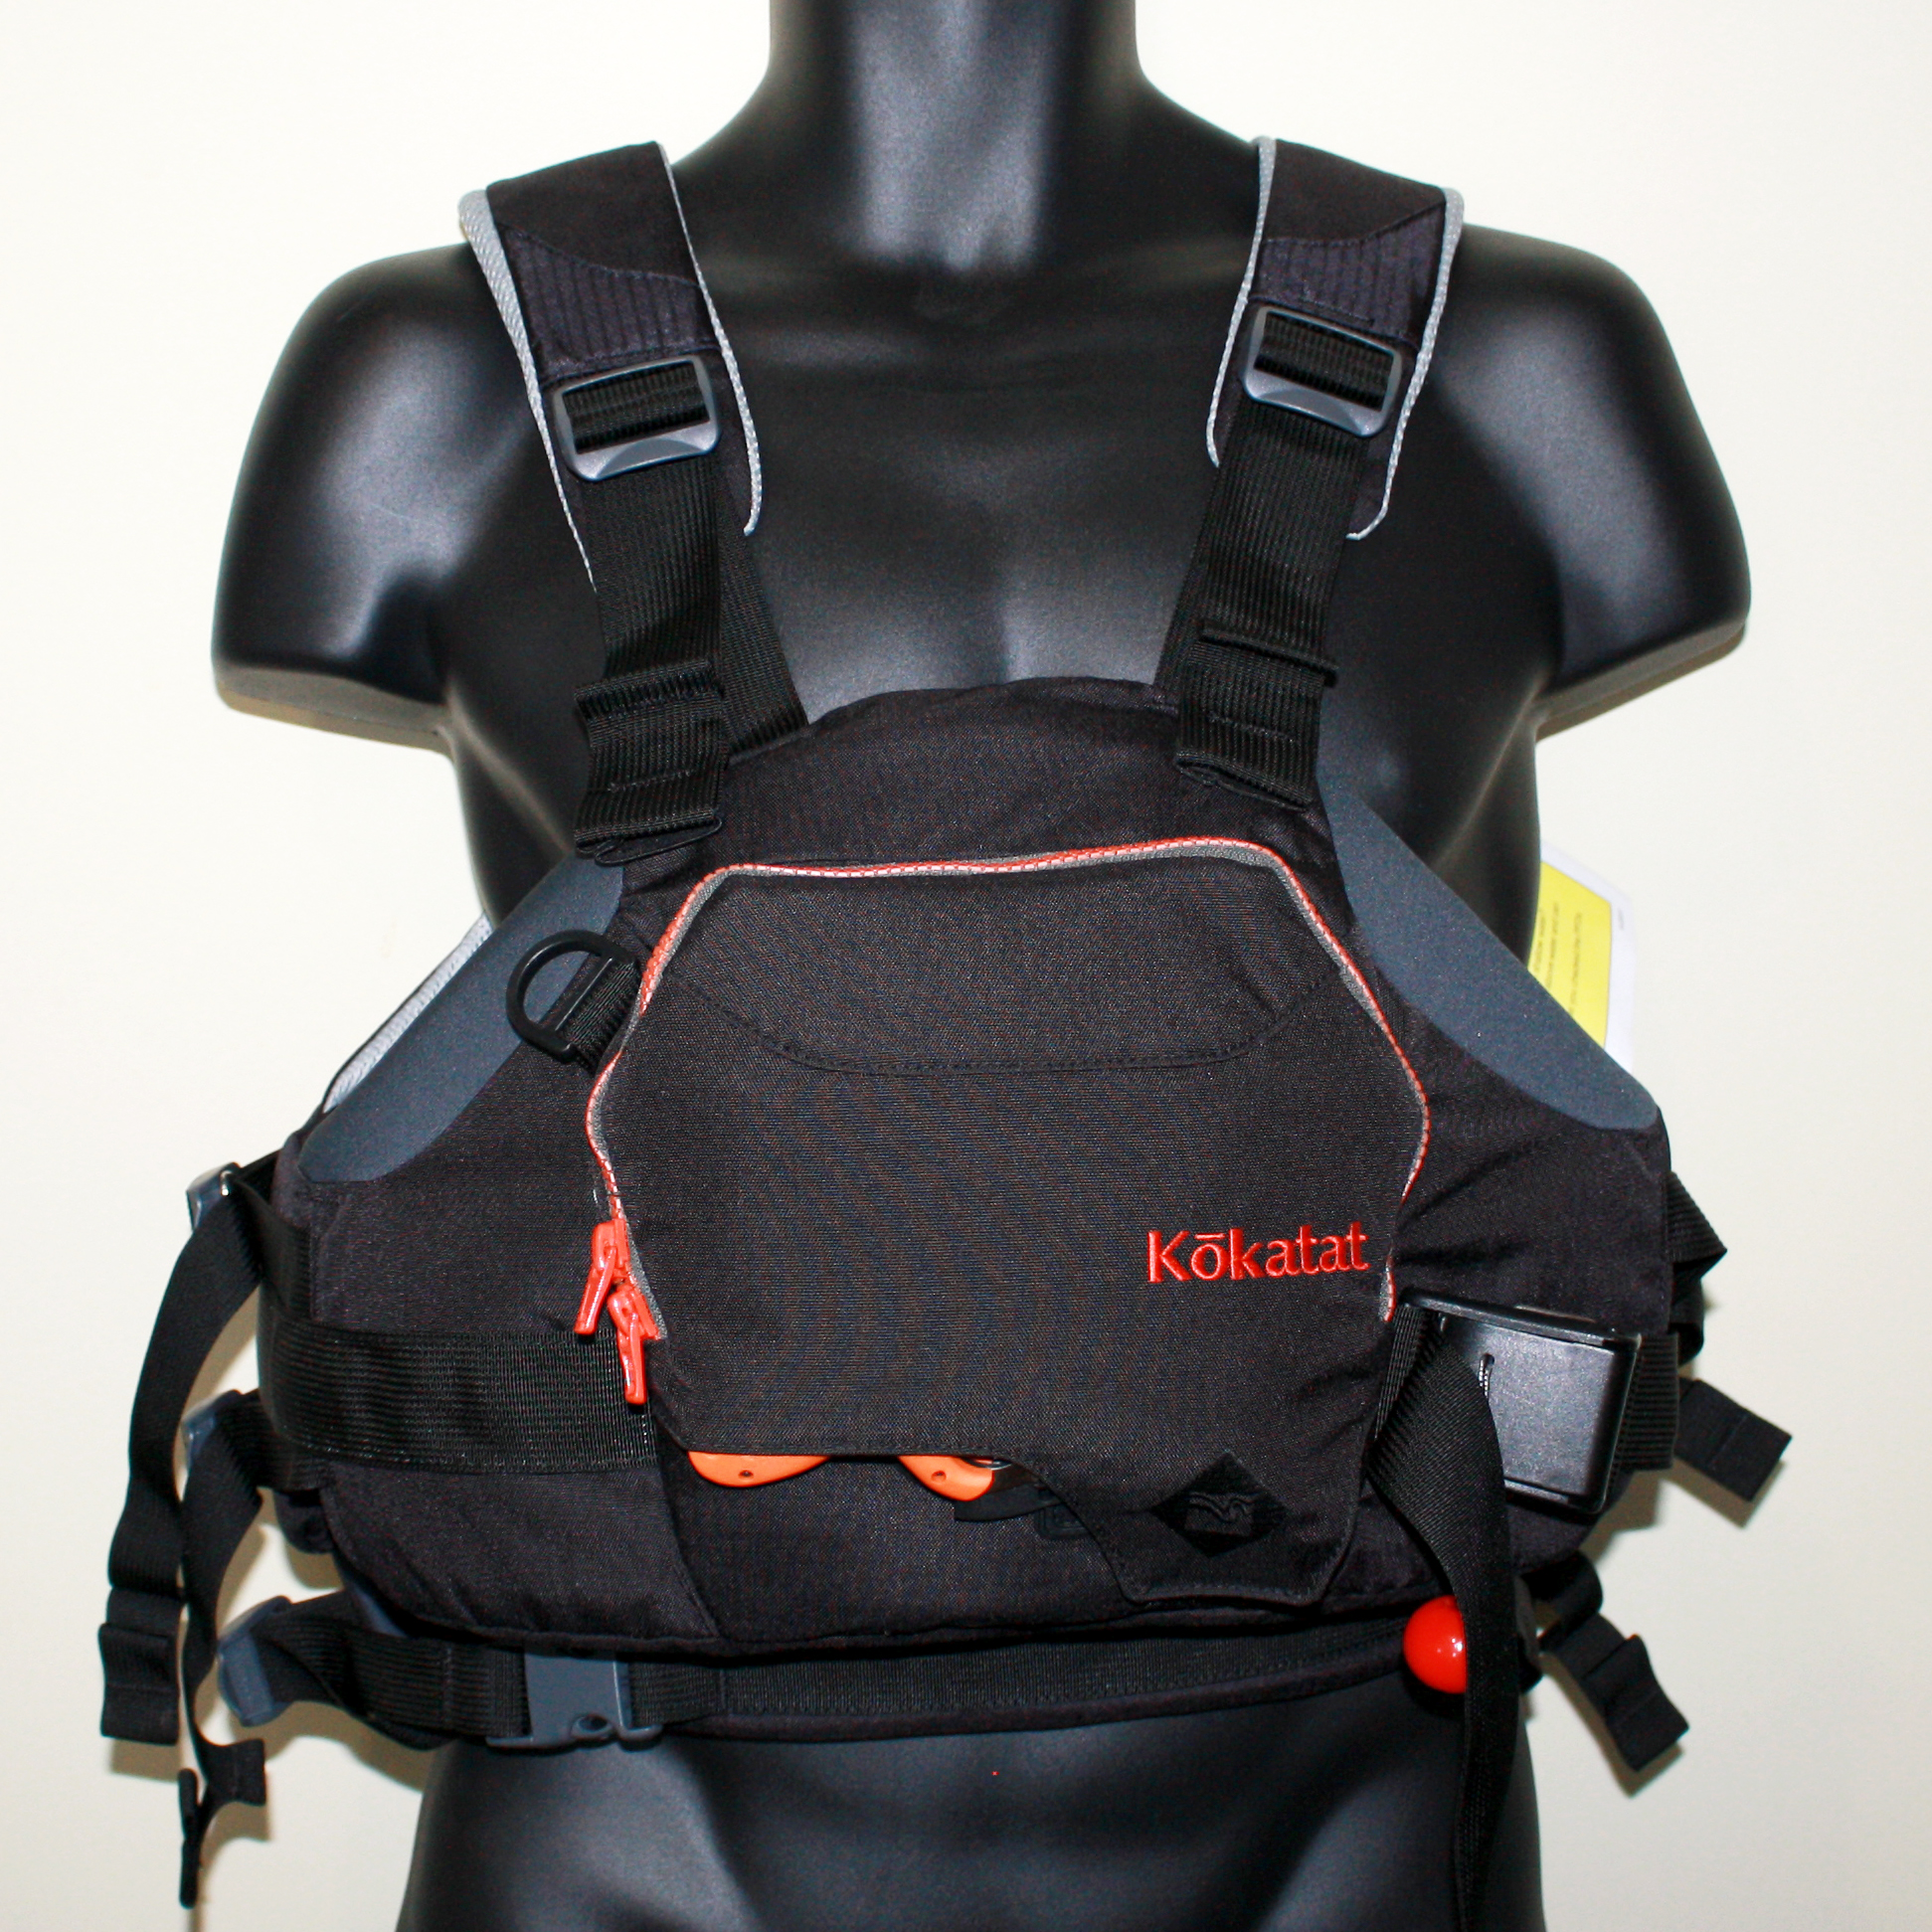 How much pocket space does a Kokatat HussleR PFD have?